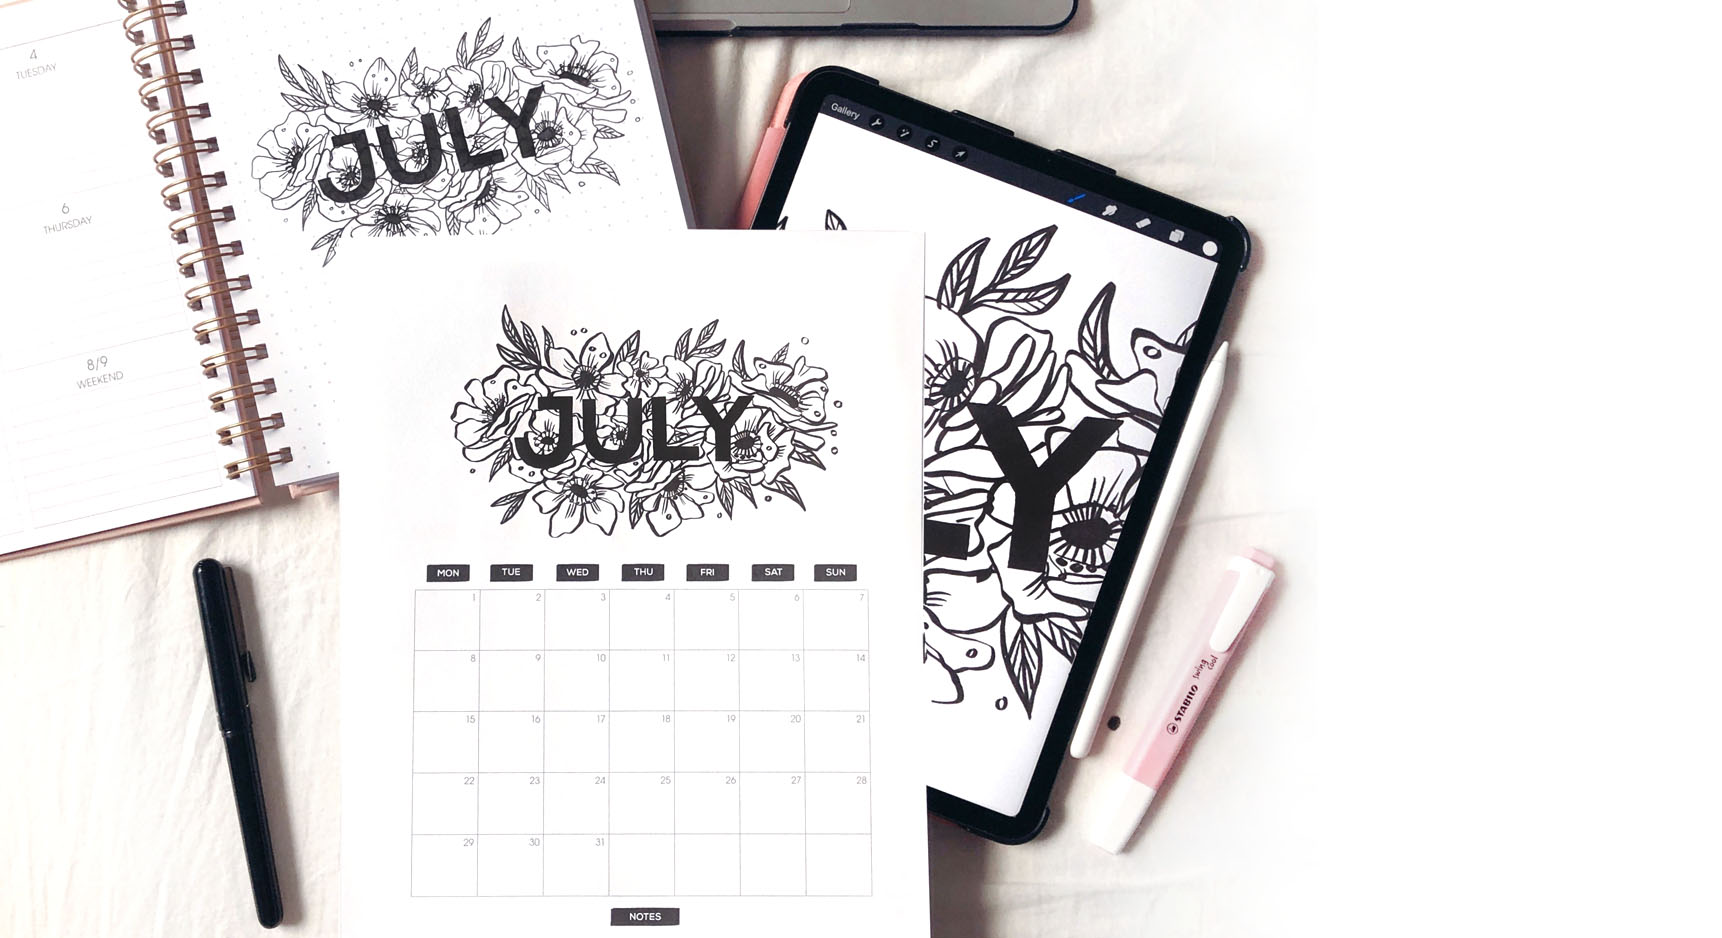 Free Calendar - Be even more organized! Download a floral illustrated calendar.